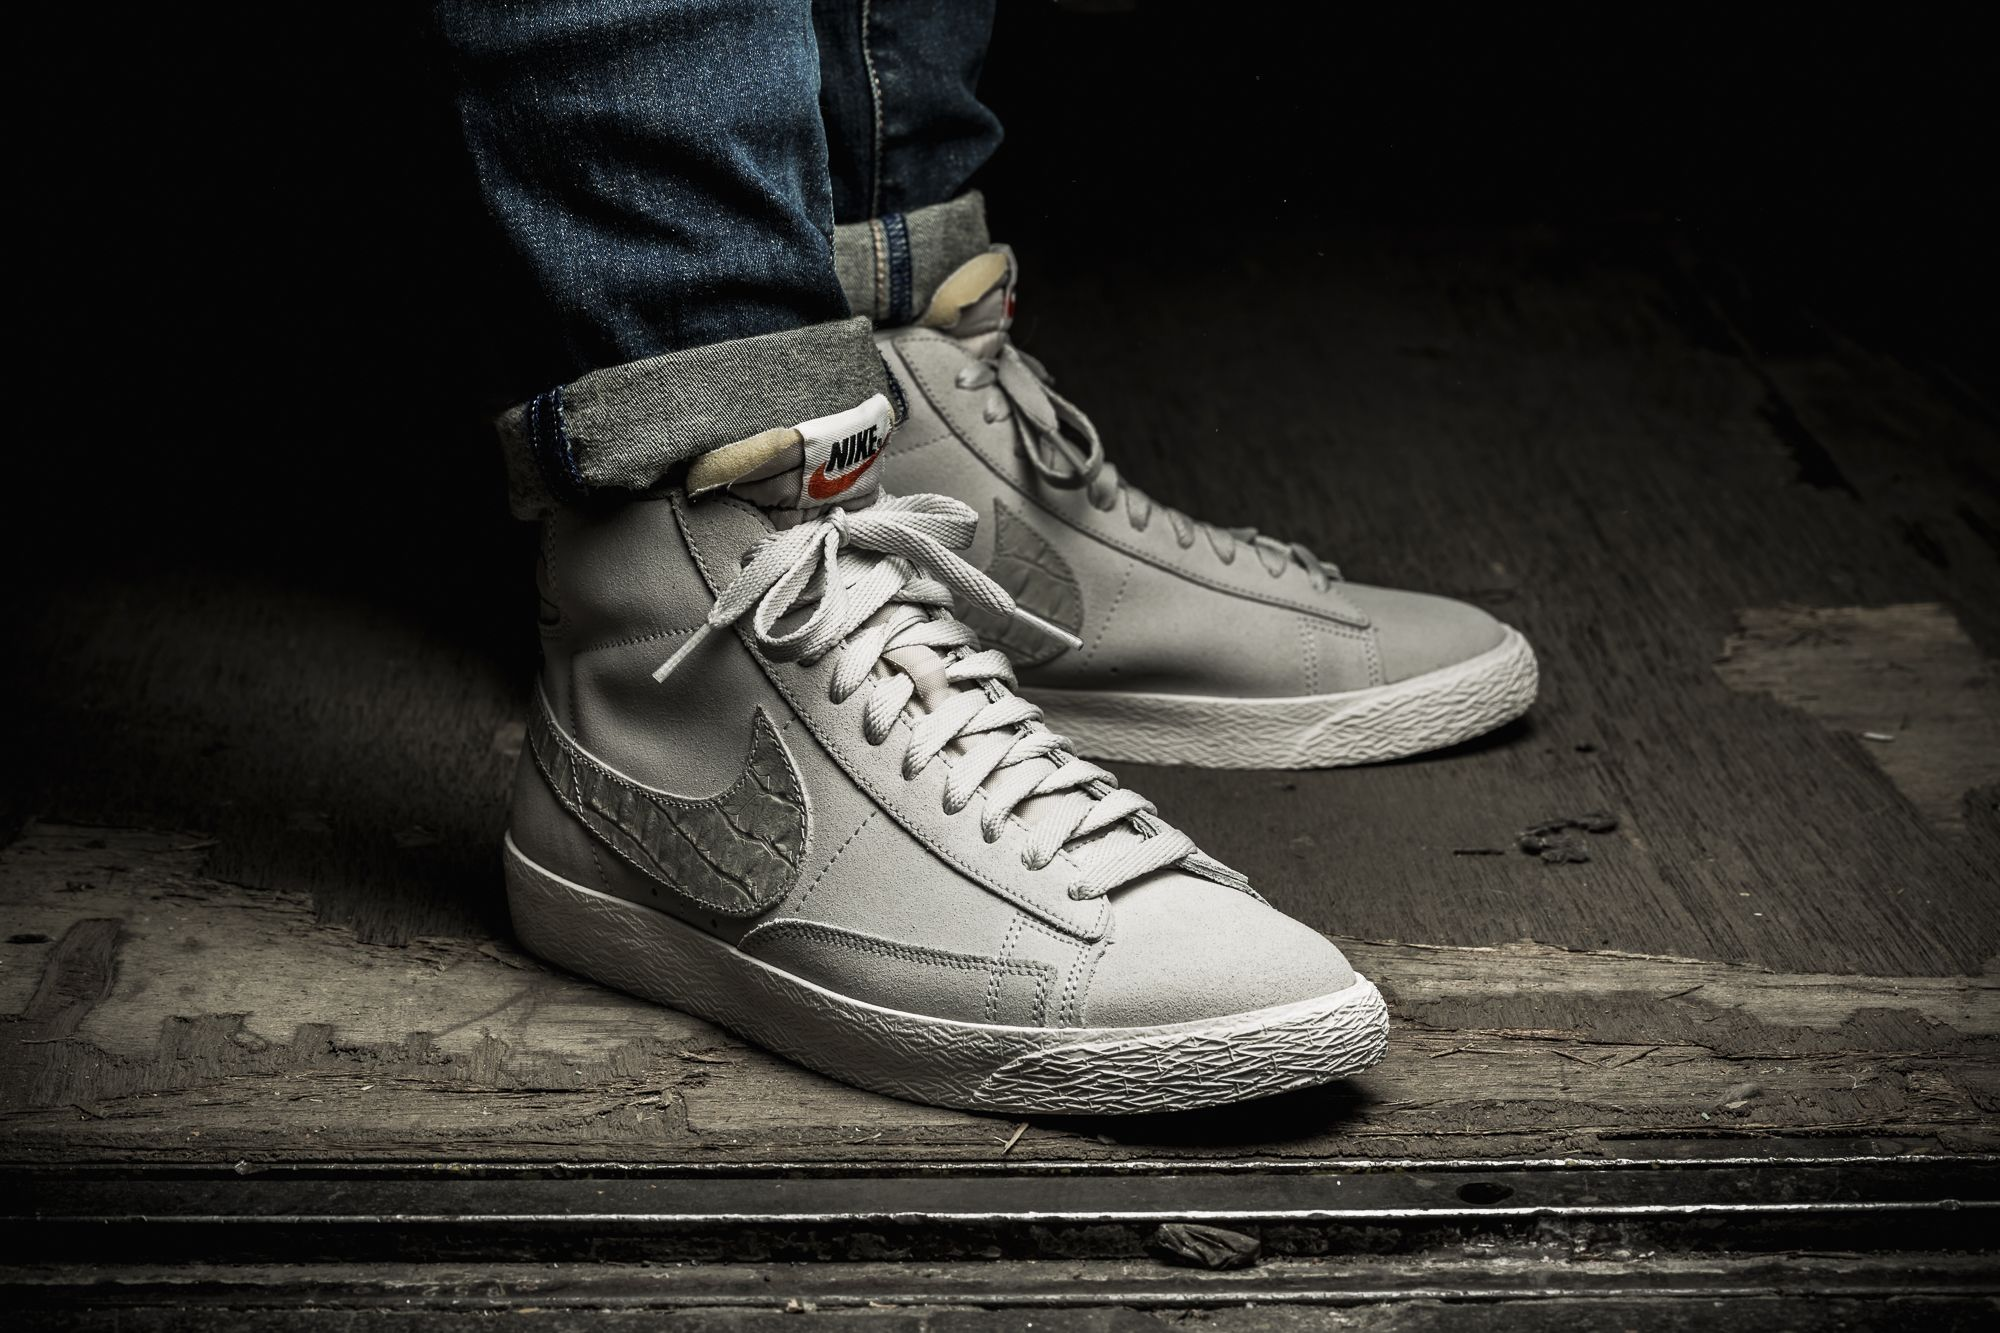 Vintage Mid Available At Shop Blazer Nike Is The Our Premium H9DIE2